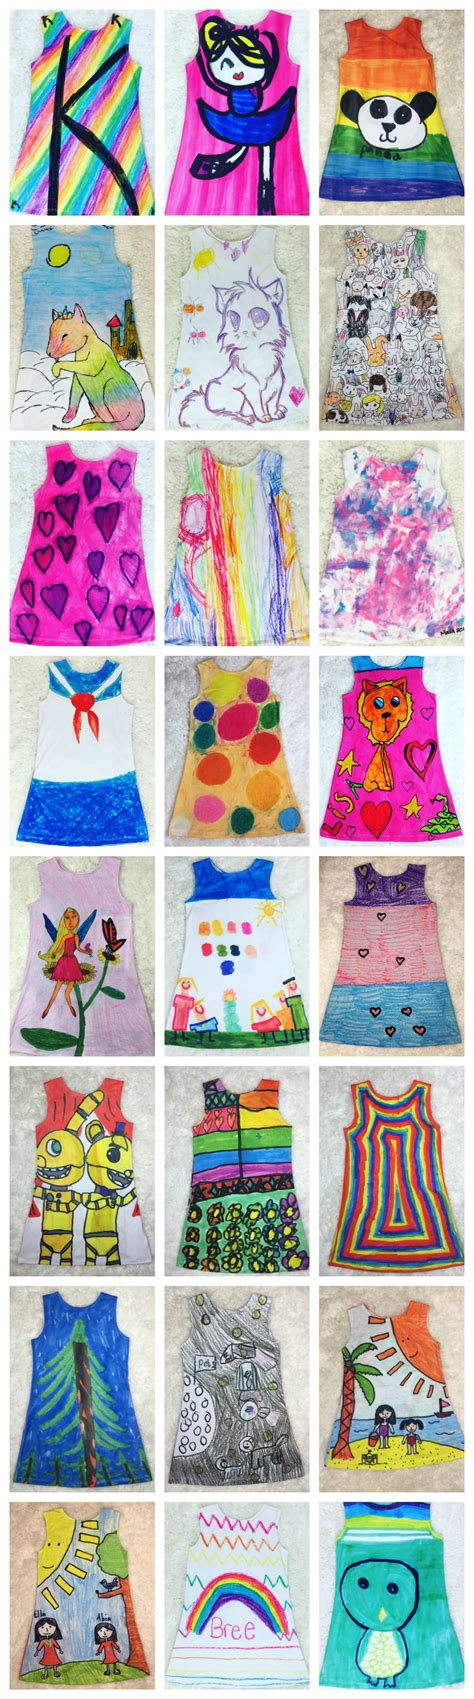 design clothes online for fun turn kids drawings into clothes be a fun mum